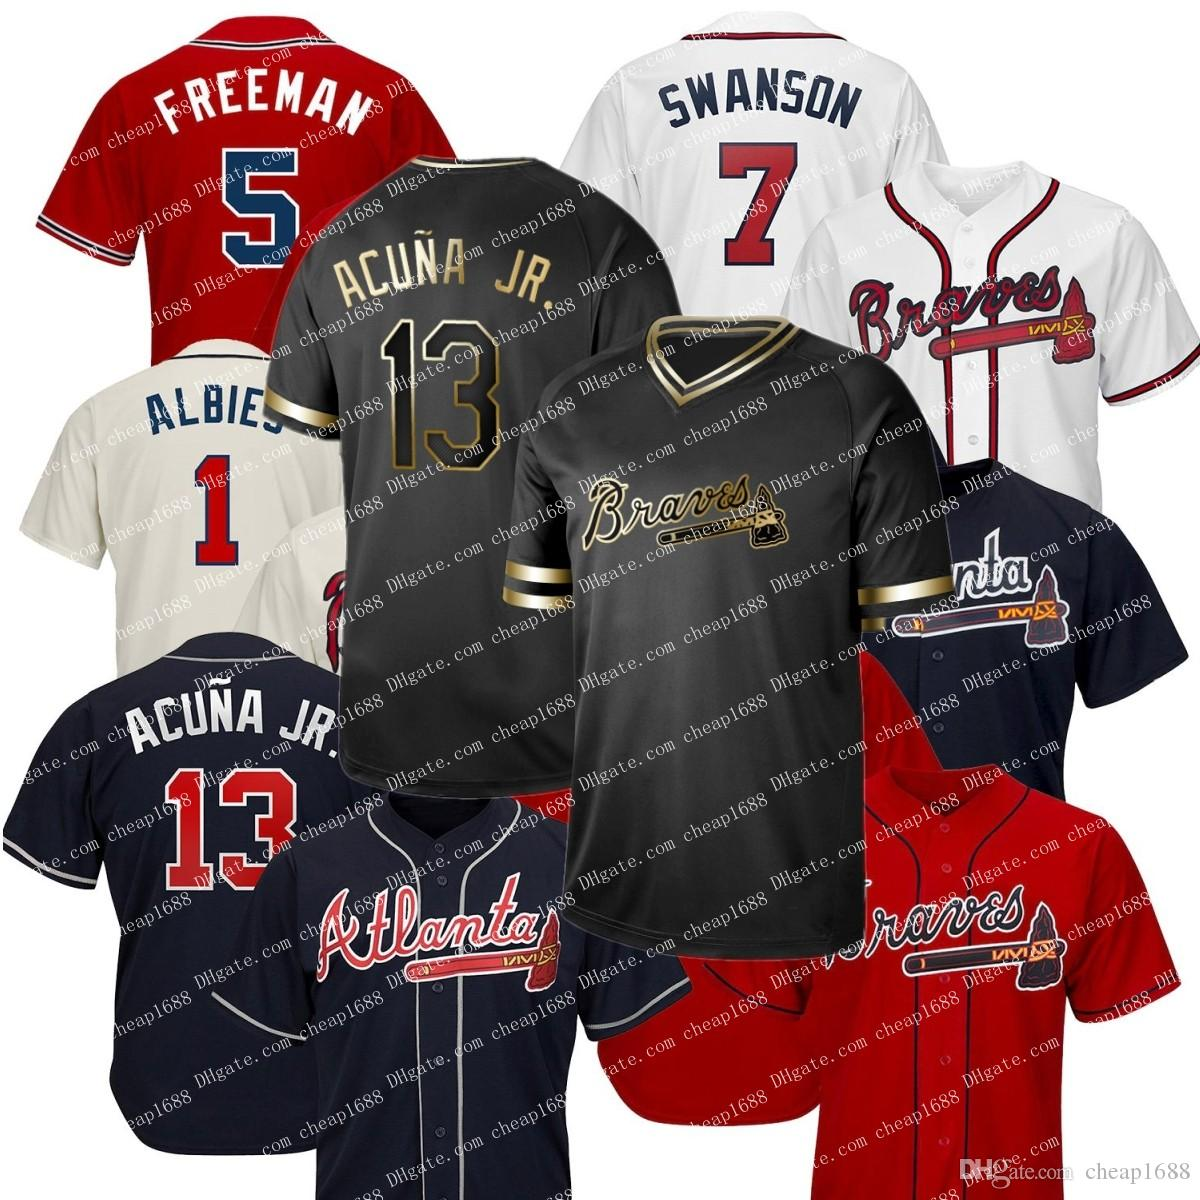 watch 29a6a 0b34e Men Atlanta 2019 Braves Jersey Ronald Acuna Jr. Jr Ozzie Albies Freddie  Freeman Dansby Swanson Chipper Jones Black Gold baseball Jerseys